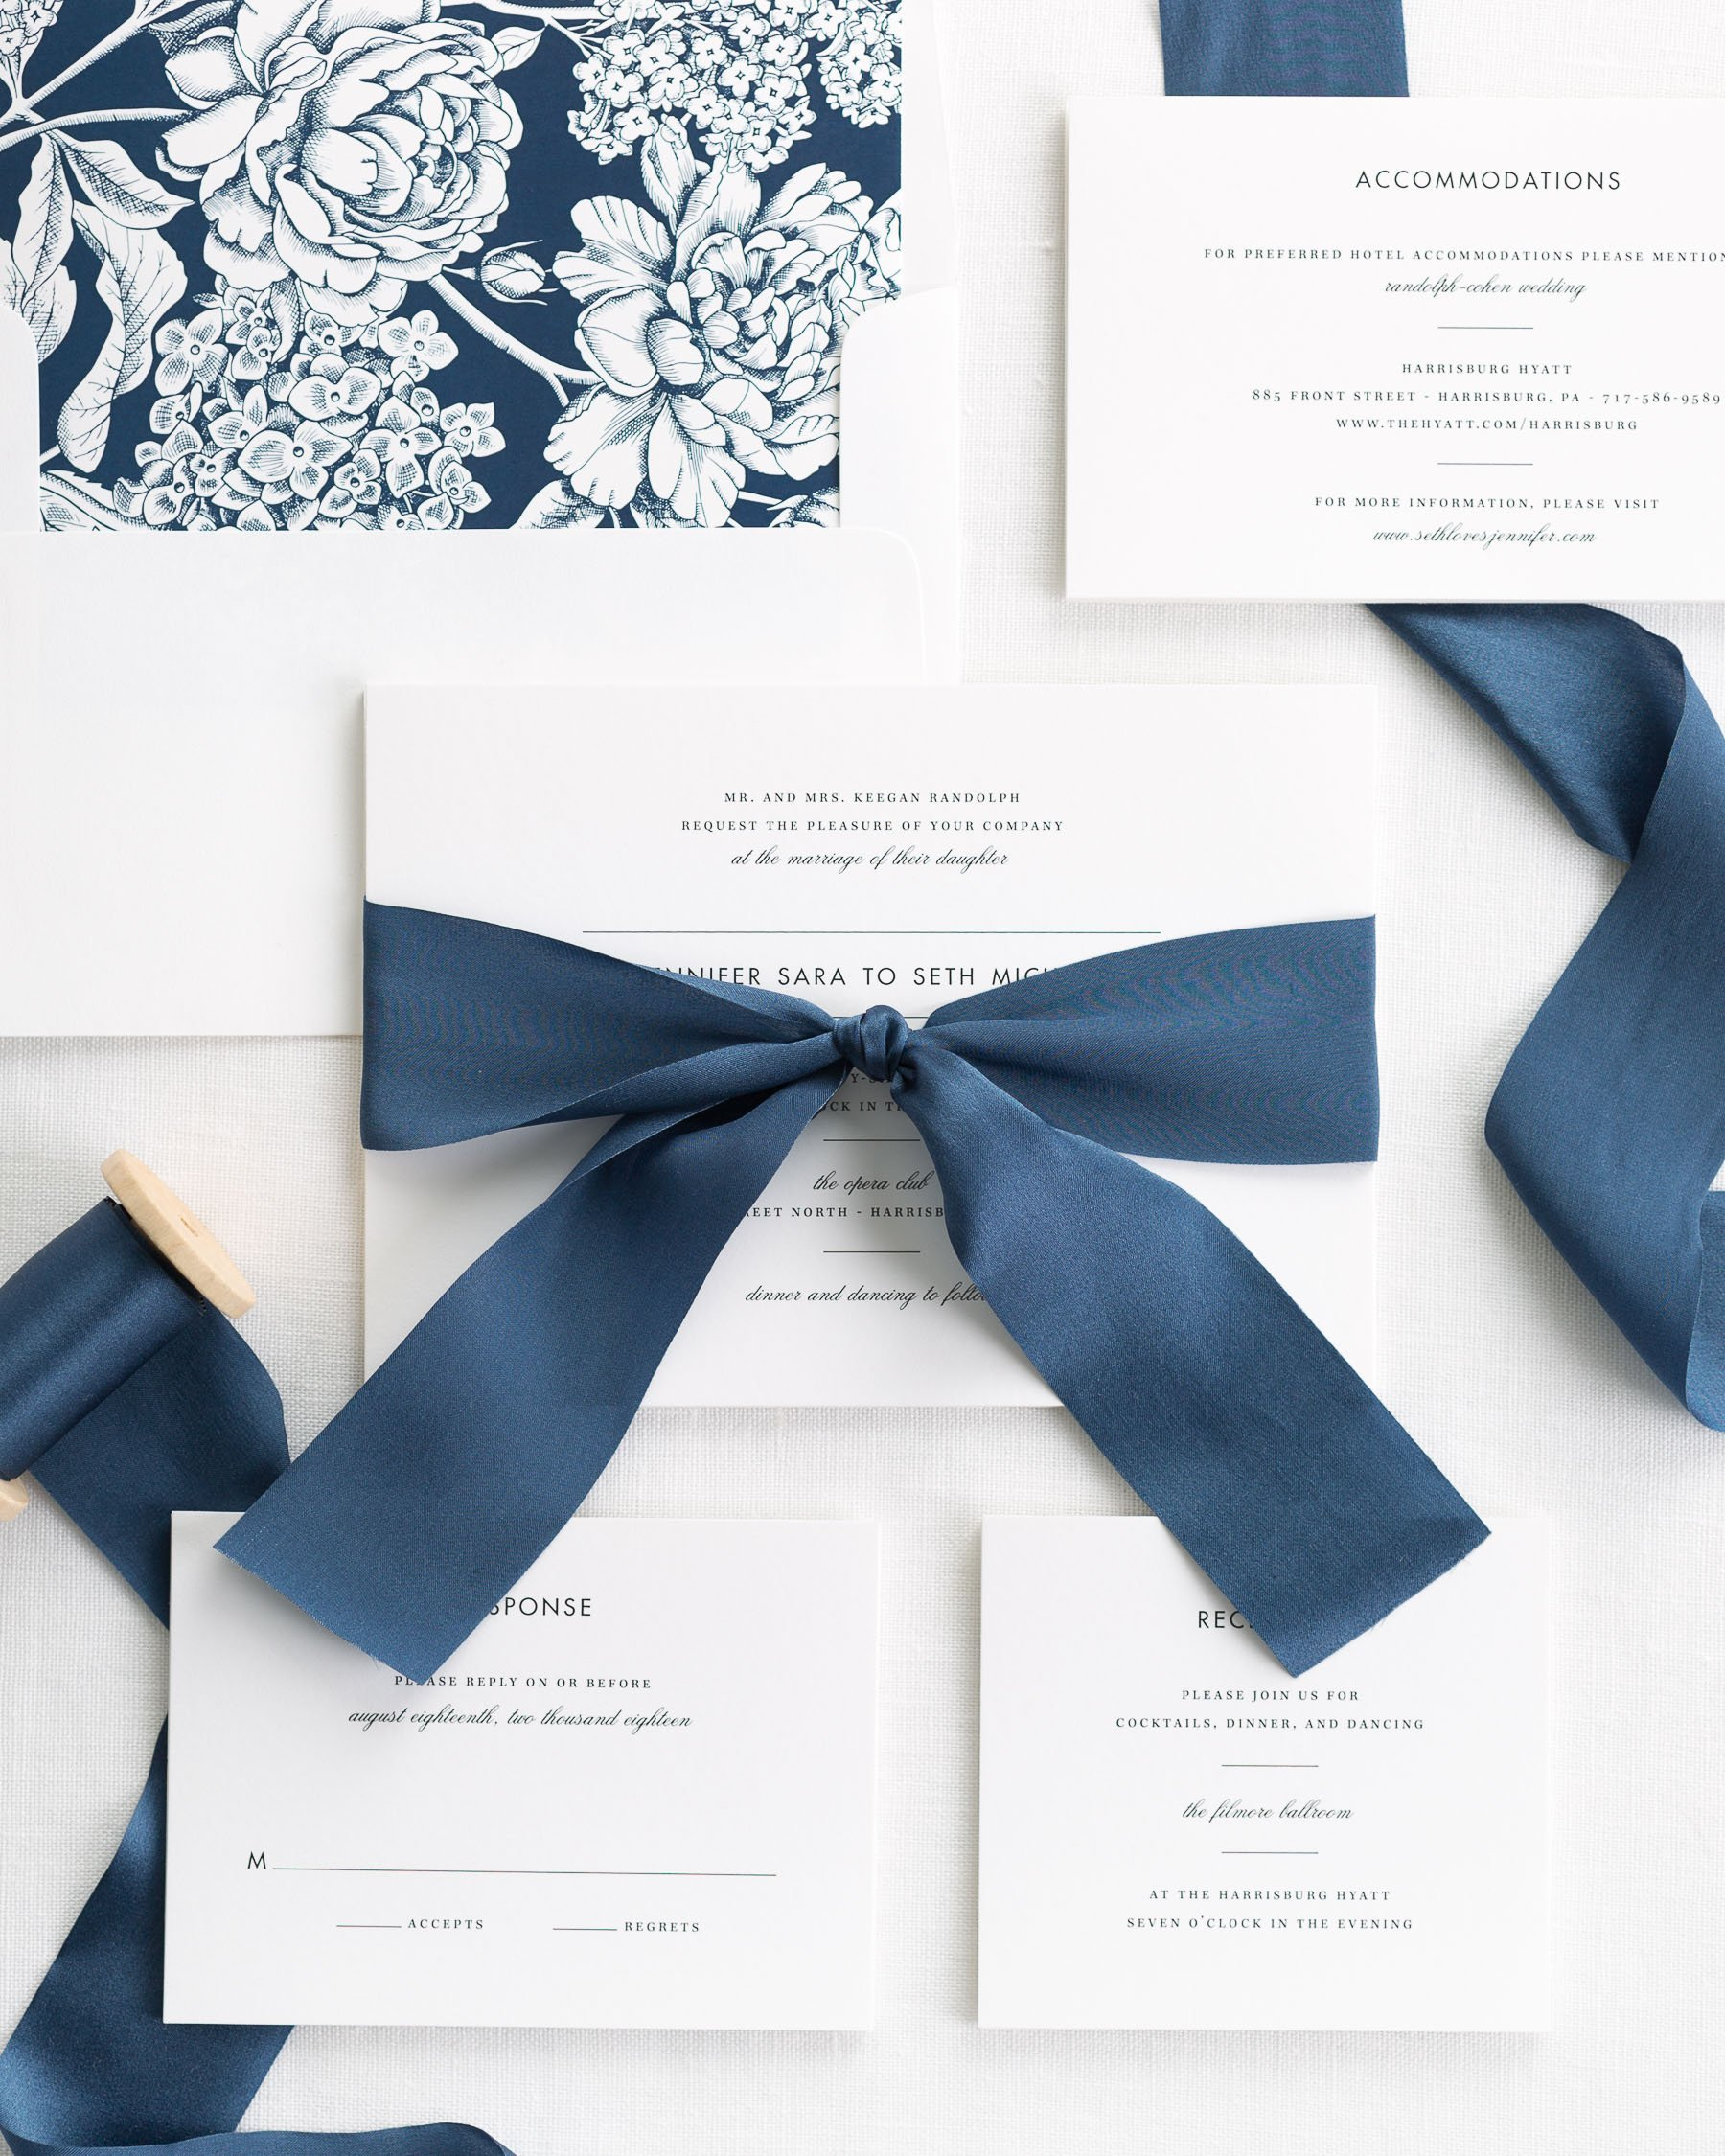 Wedding Invitations With Ribbons: Modern Romance Ribbon Wedding Invitations